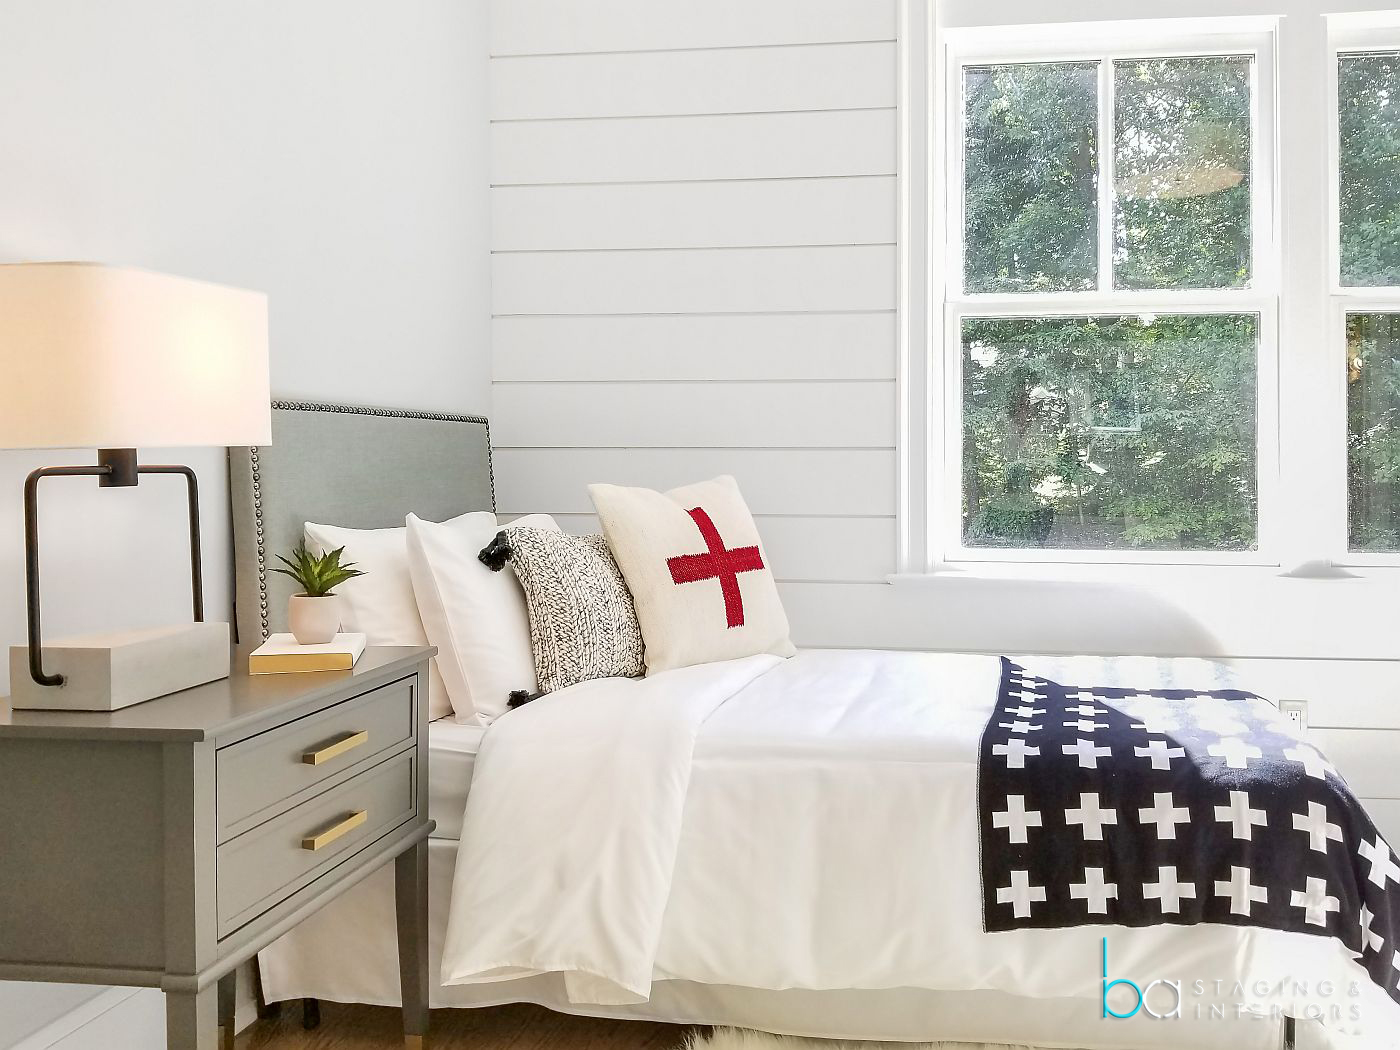 Top 40 Stylish Bedroom Sets Featured On Houzz Ba Staging